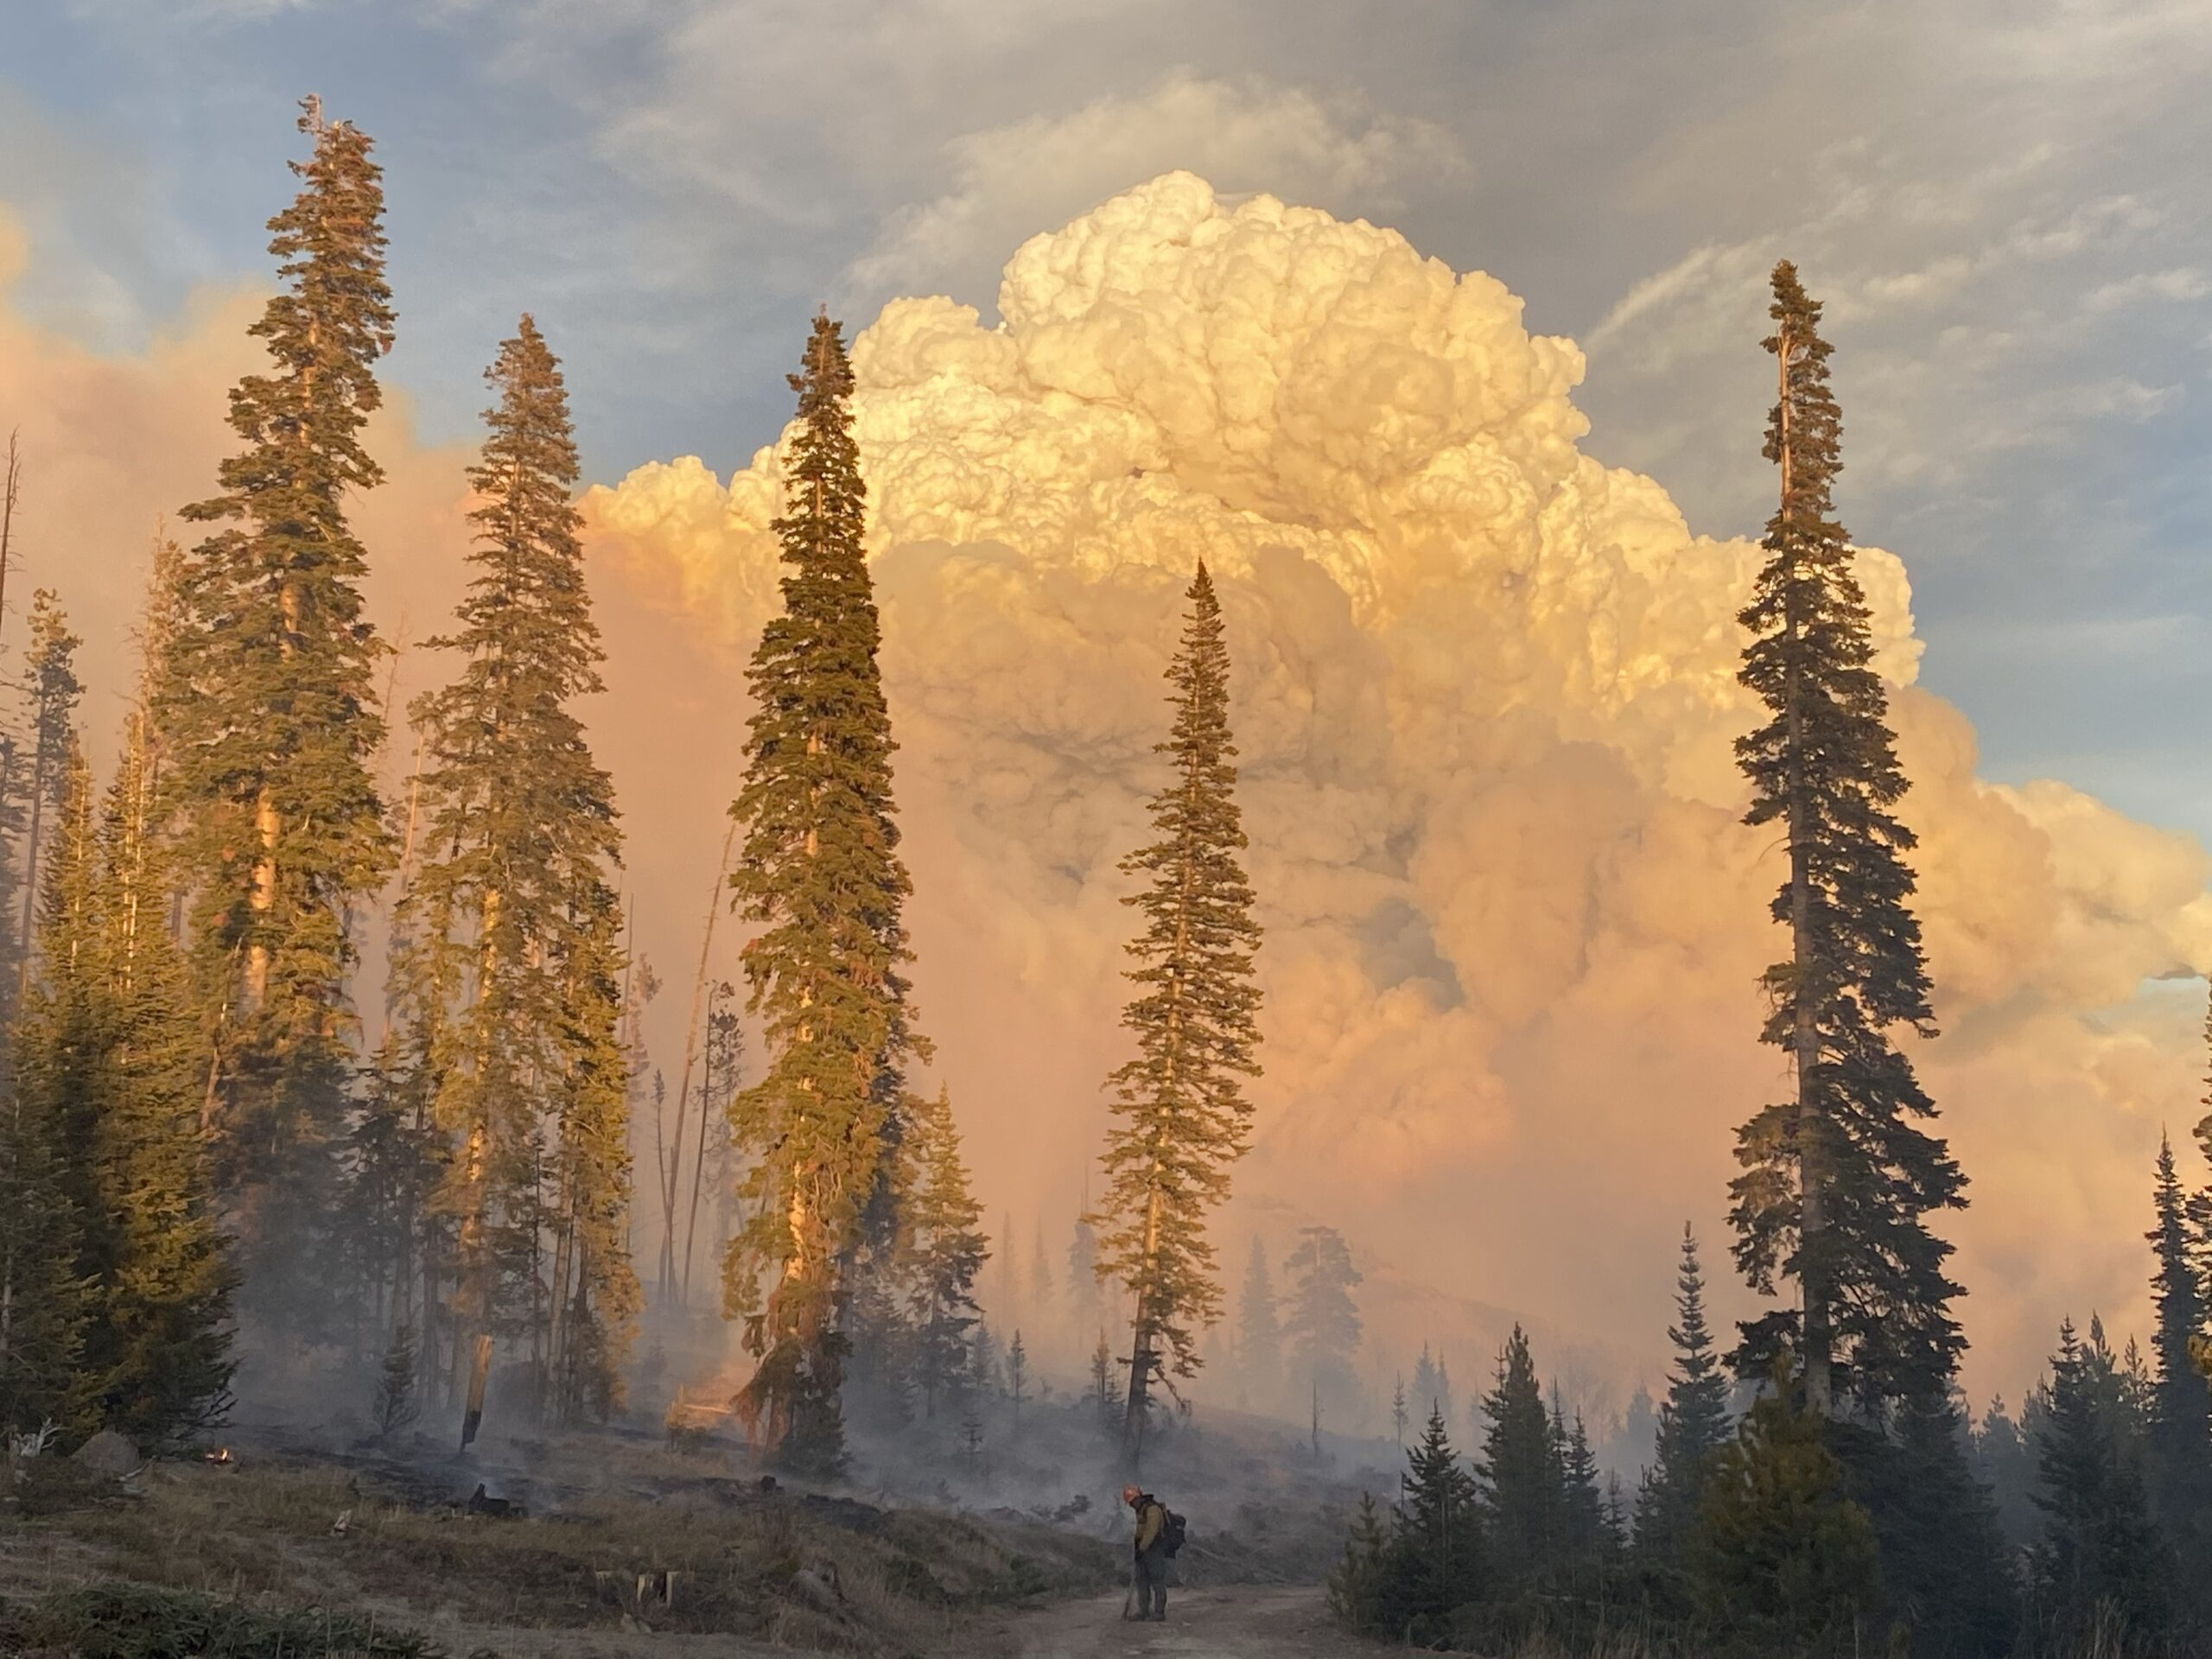 The Mill Creek Interagency Hotshot Crew tries to contain the East Troublesome fire on October 21, 2020.